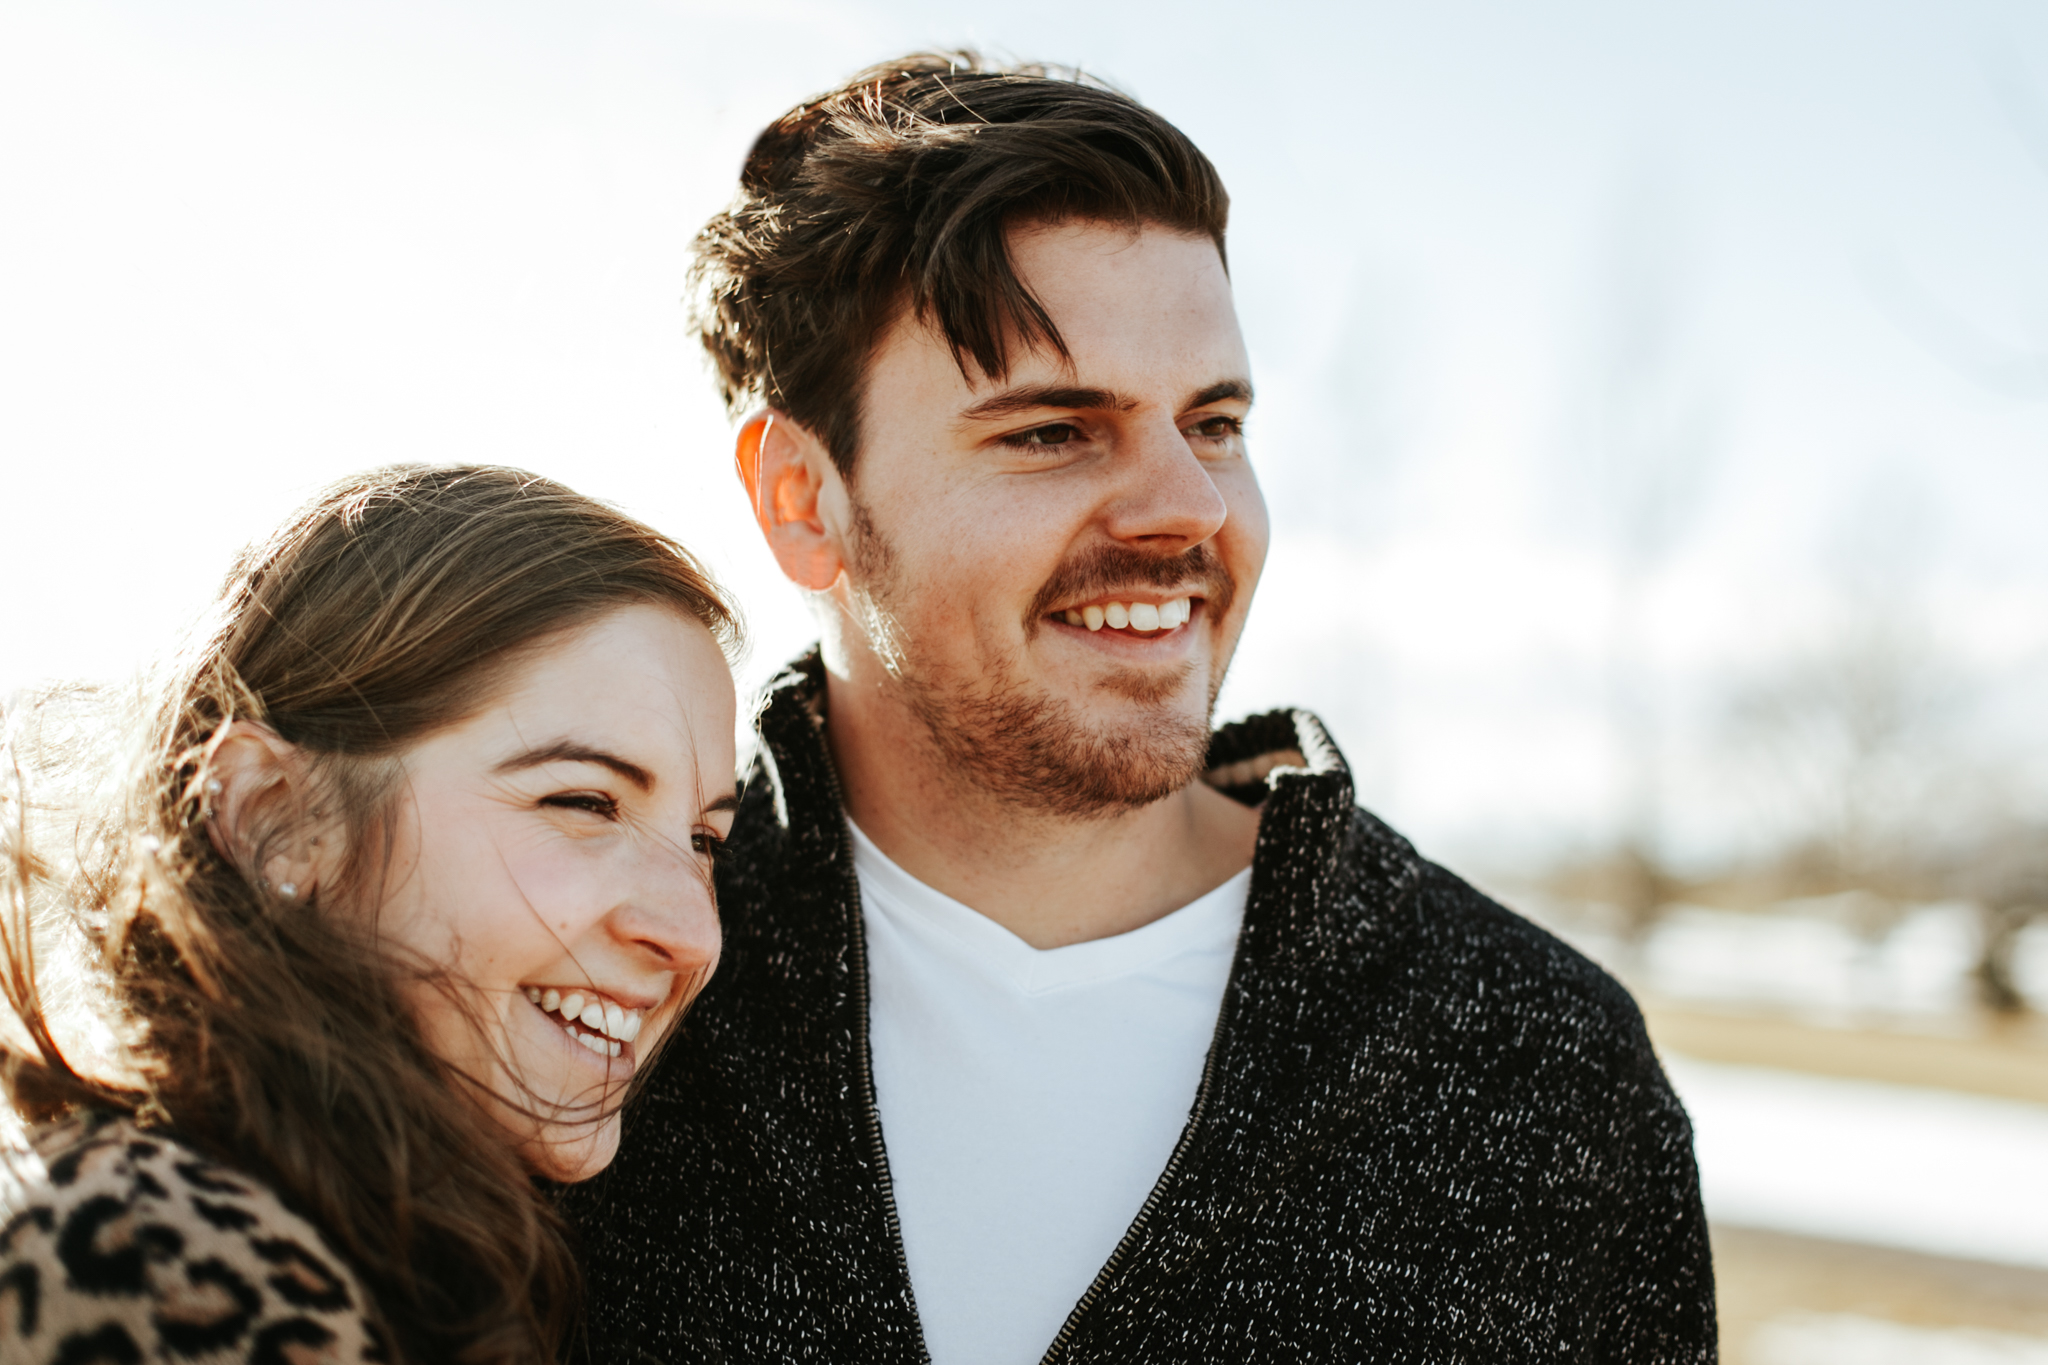 lethbridge-photographer-love-and-be-loved-photography-winter-engagement-emma-tanner-picture-image-photo-37.jpg